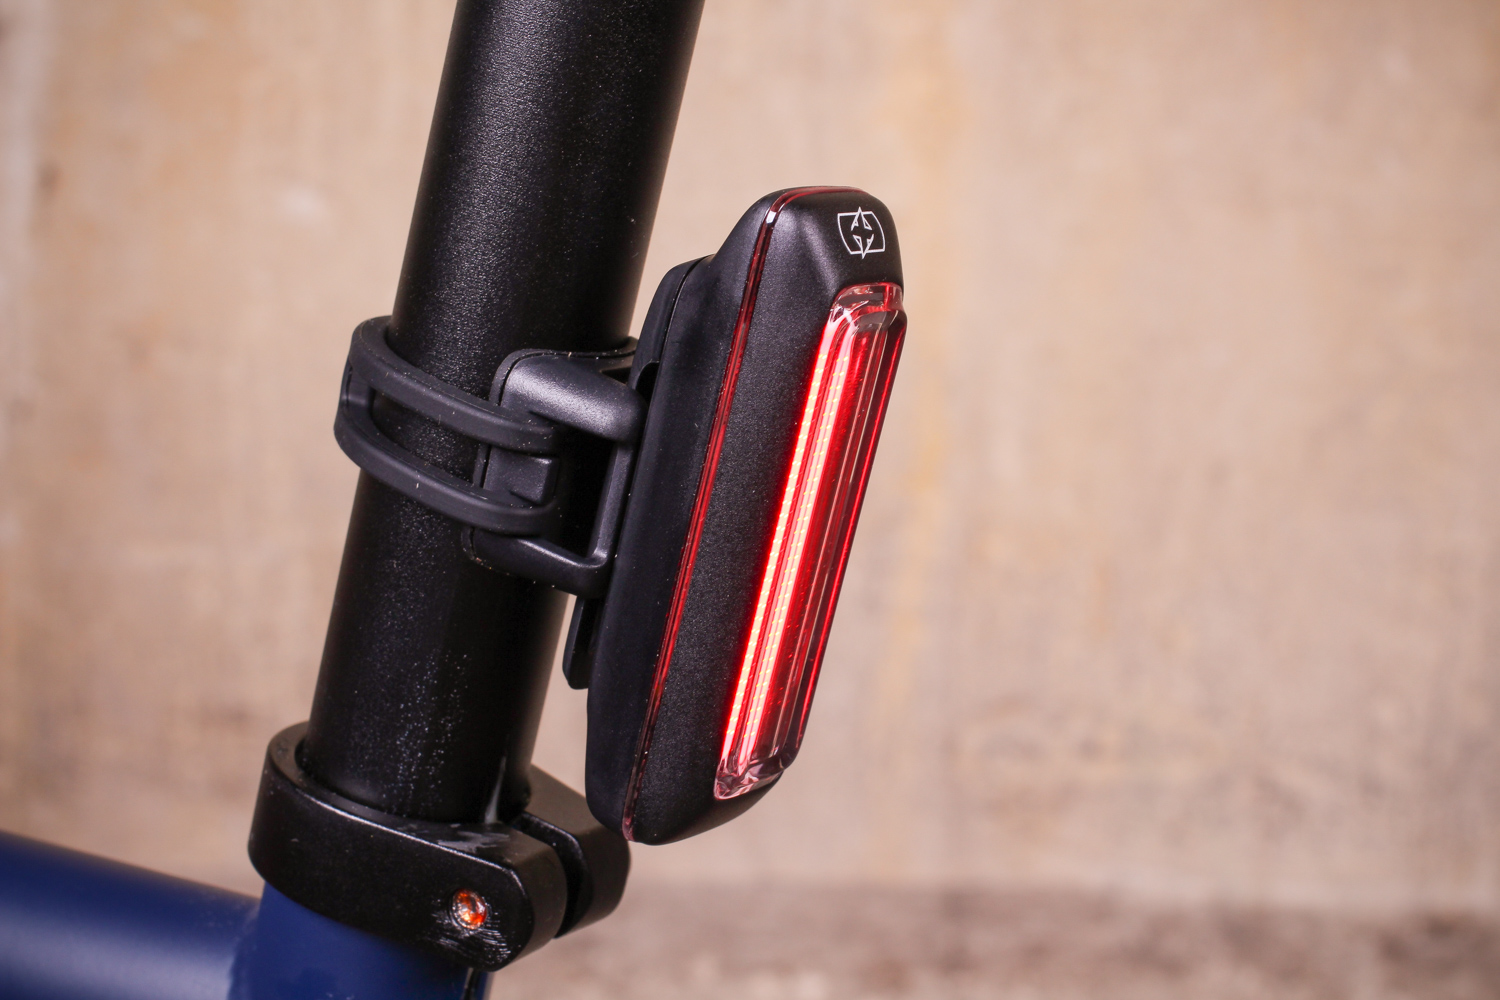 LED Front and Rear Lights Oxford Ultratorch set